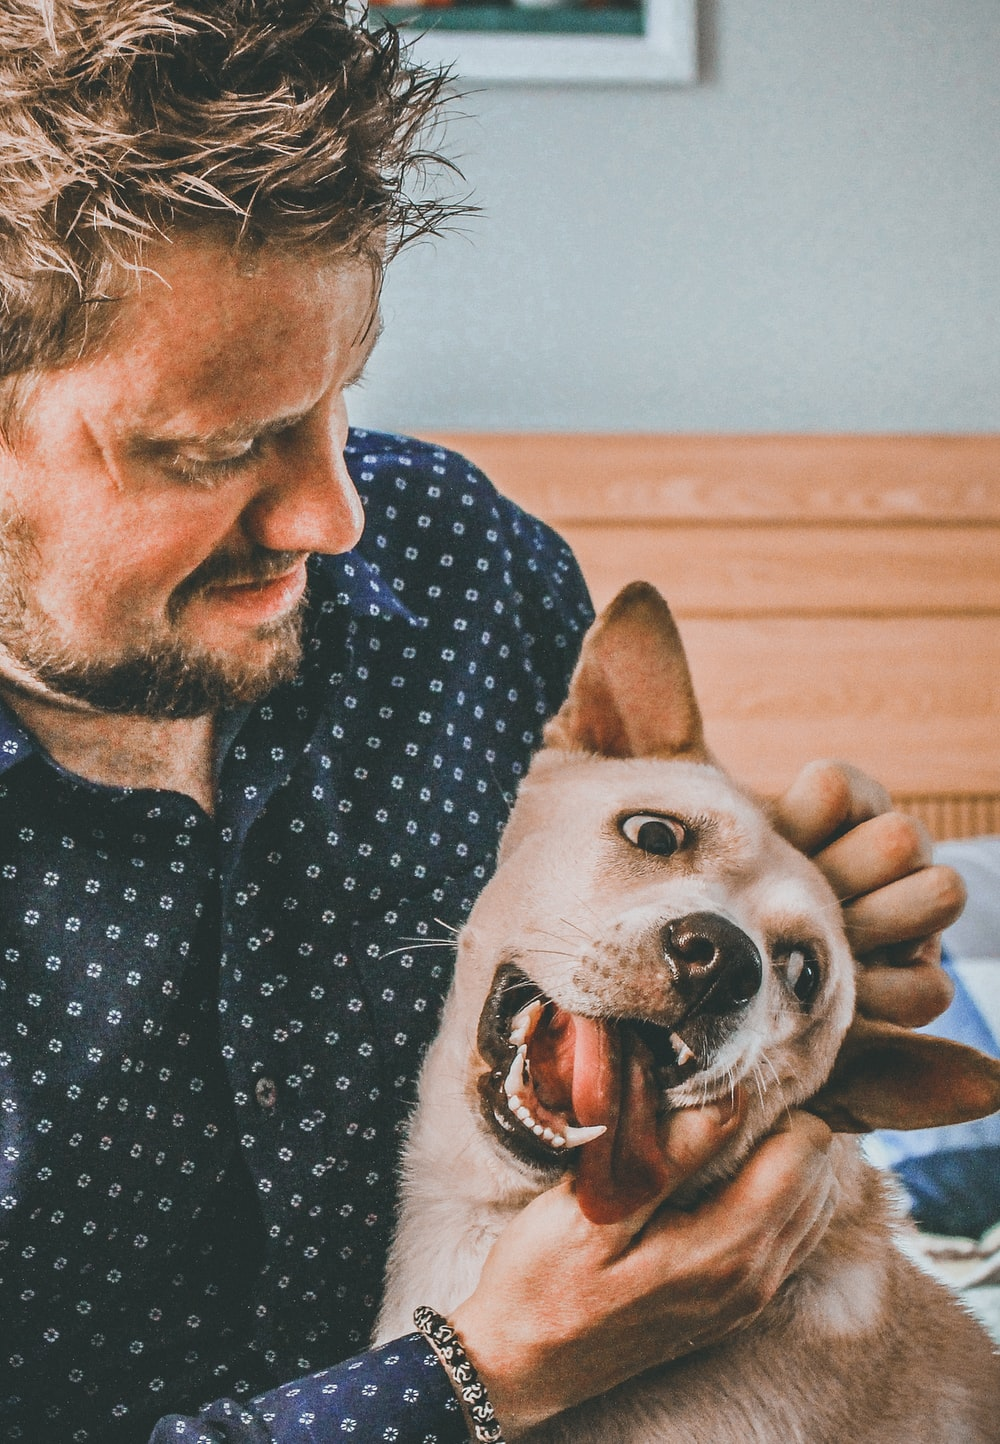 man petting short-coated brown dog in room close-up photography